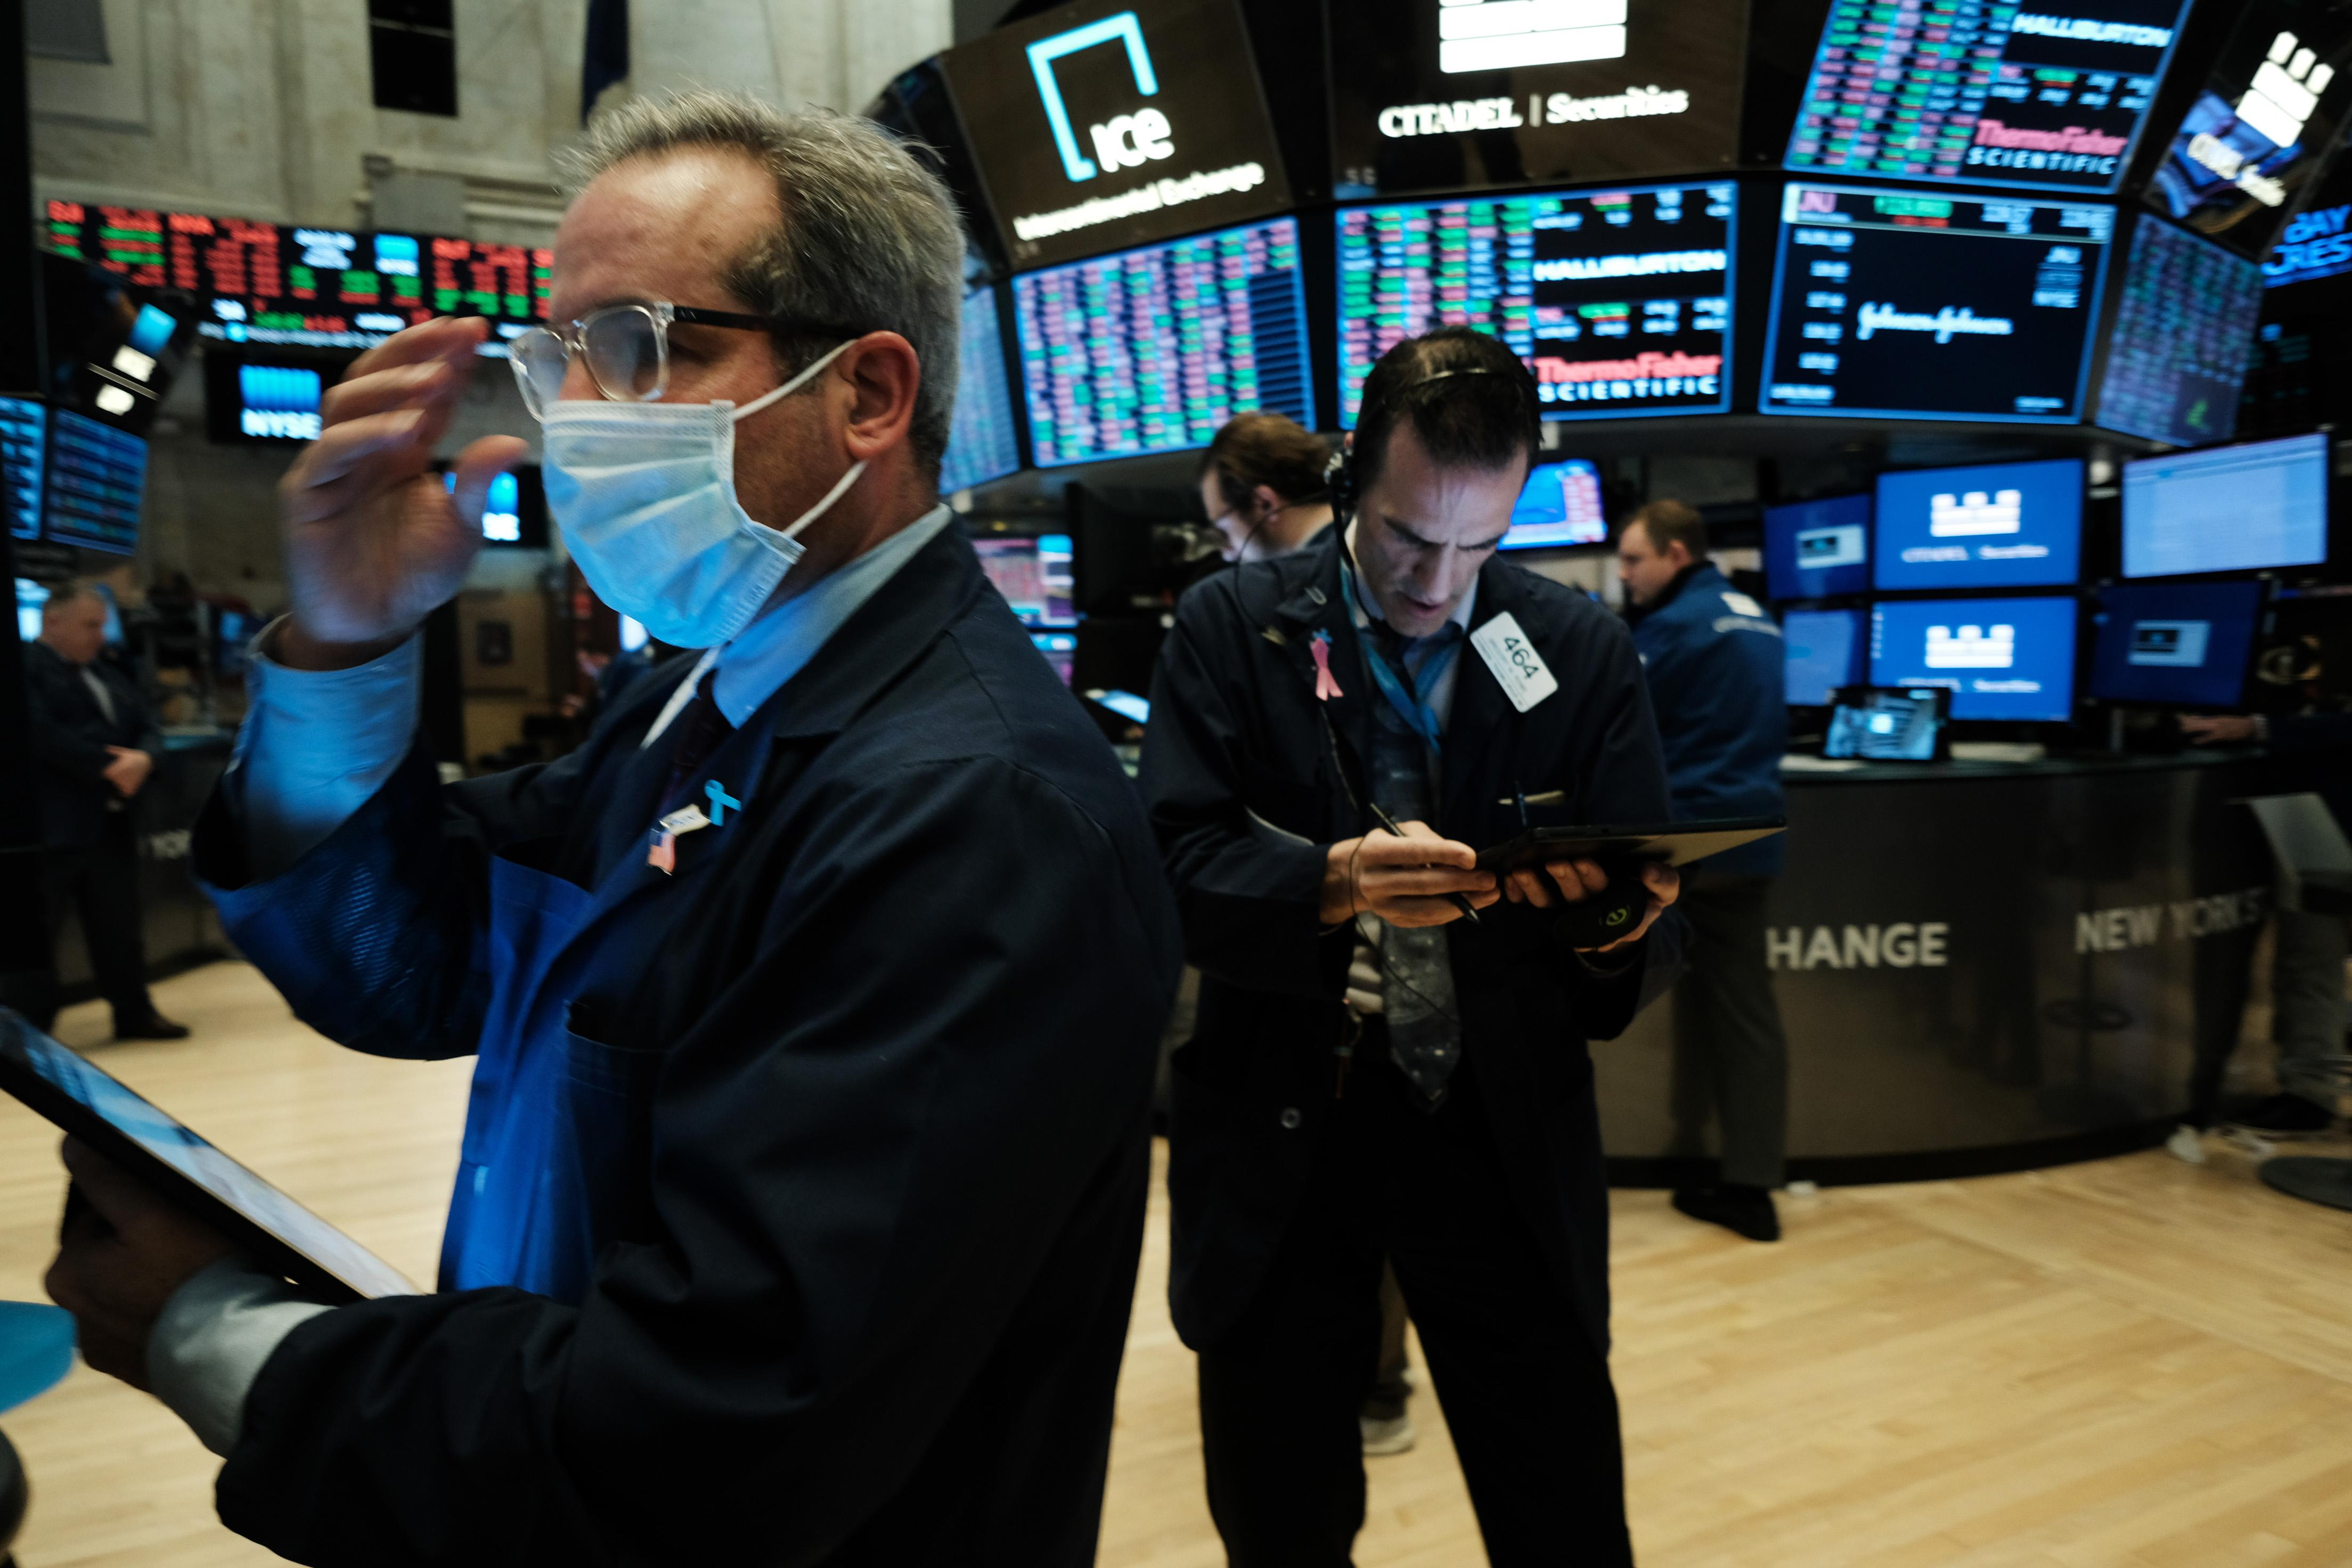 Stock futures open slightly higher after selloff